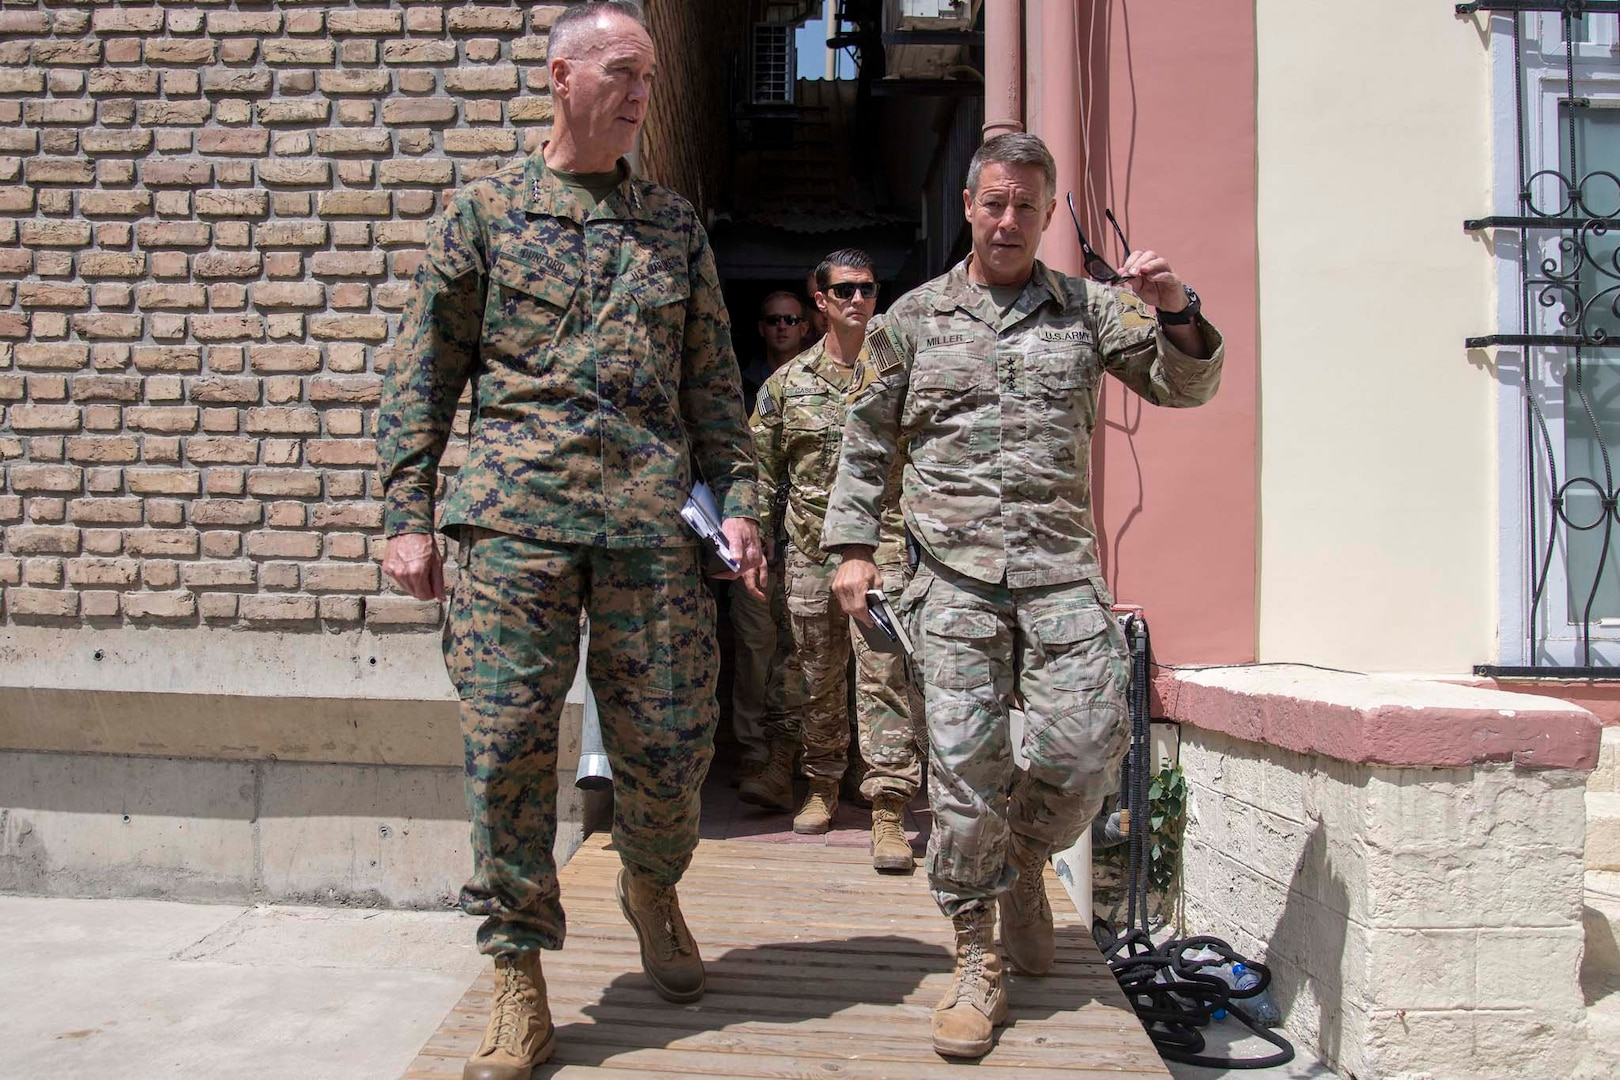 Two generals in camouflage uniforms talk while walking.